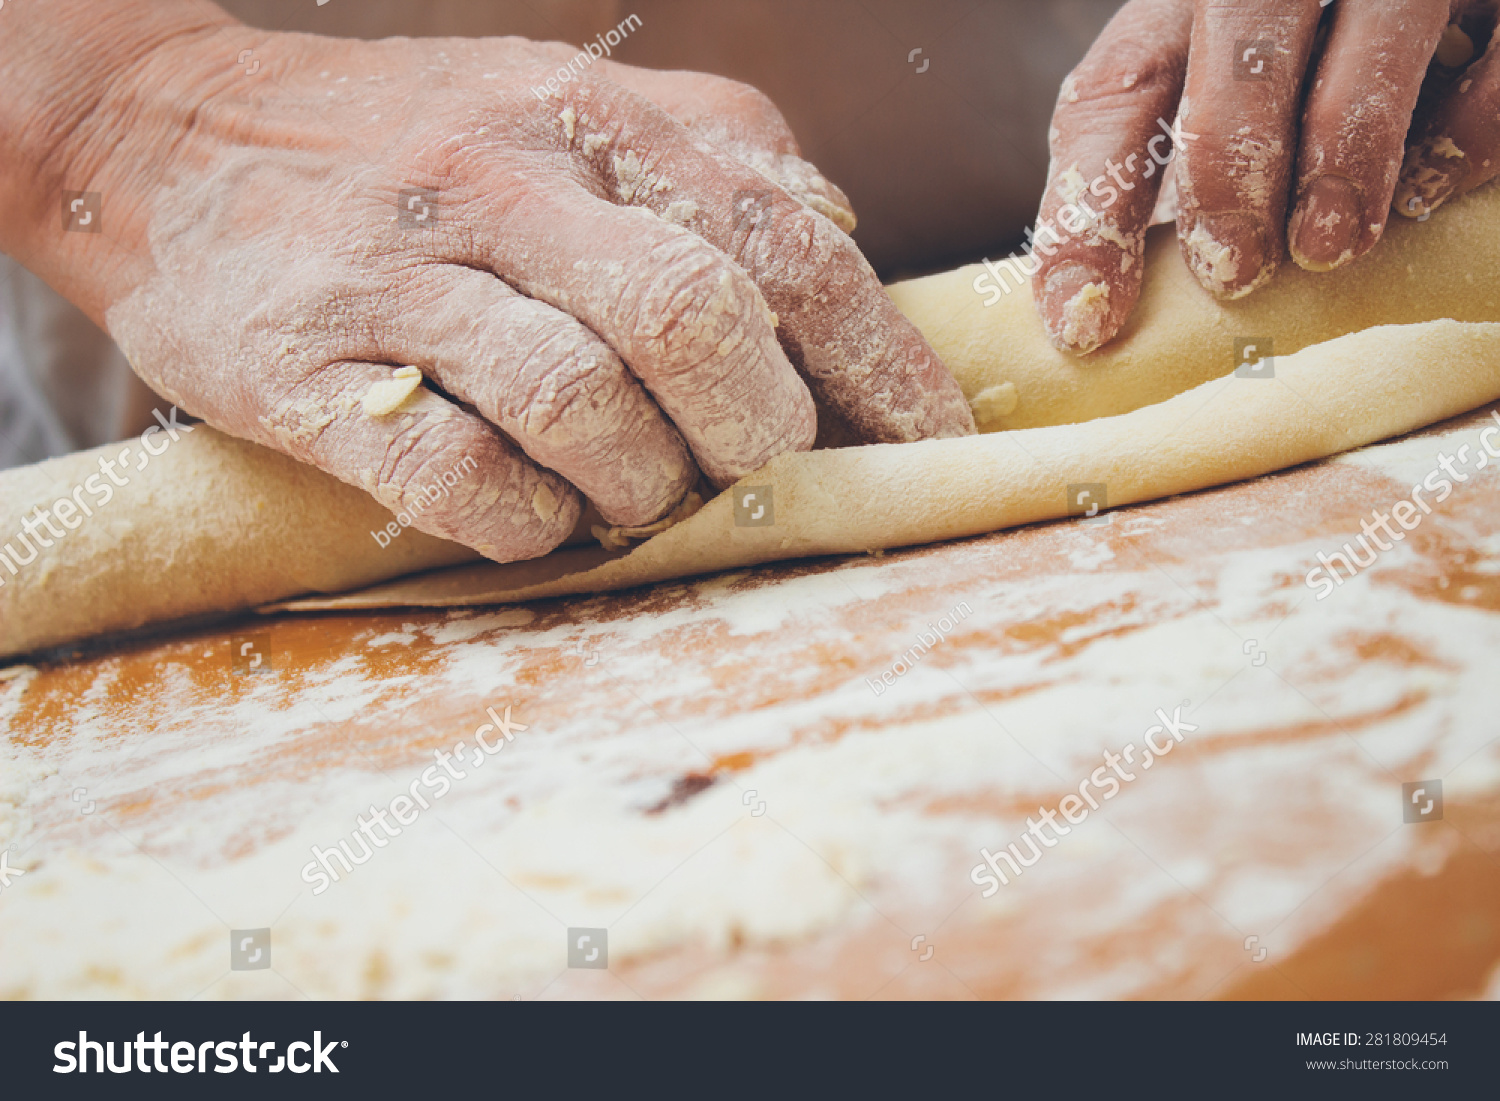 Close Up Photo Of Baker Kneading Dough With A Rolling Pin. Retro Styled Imagery. Grain Added ...